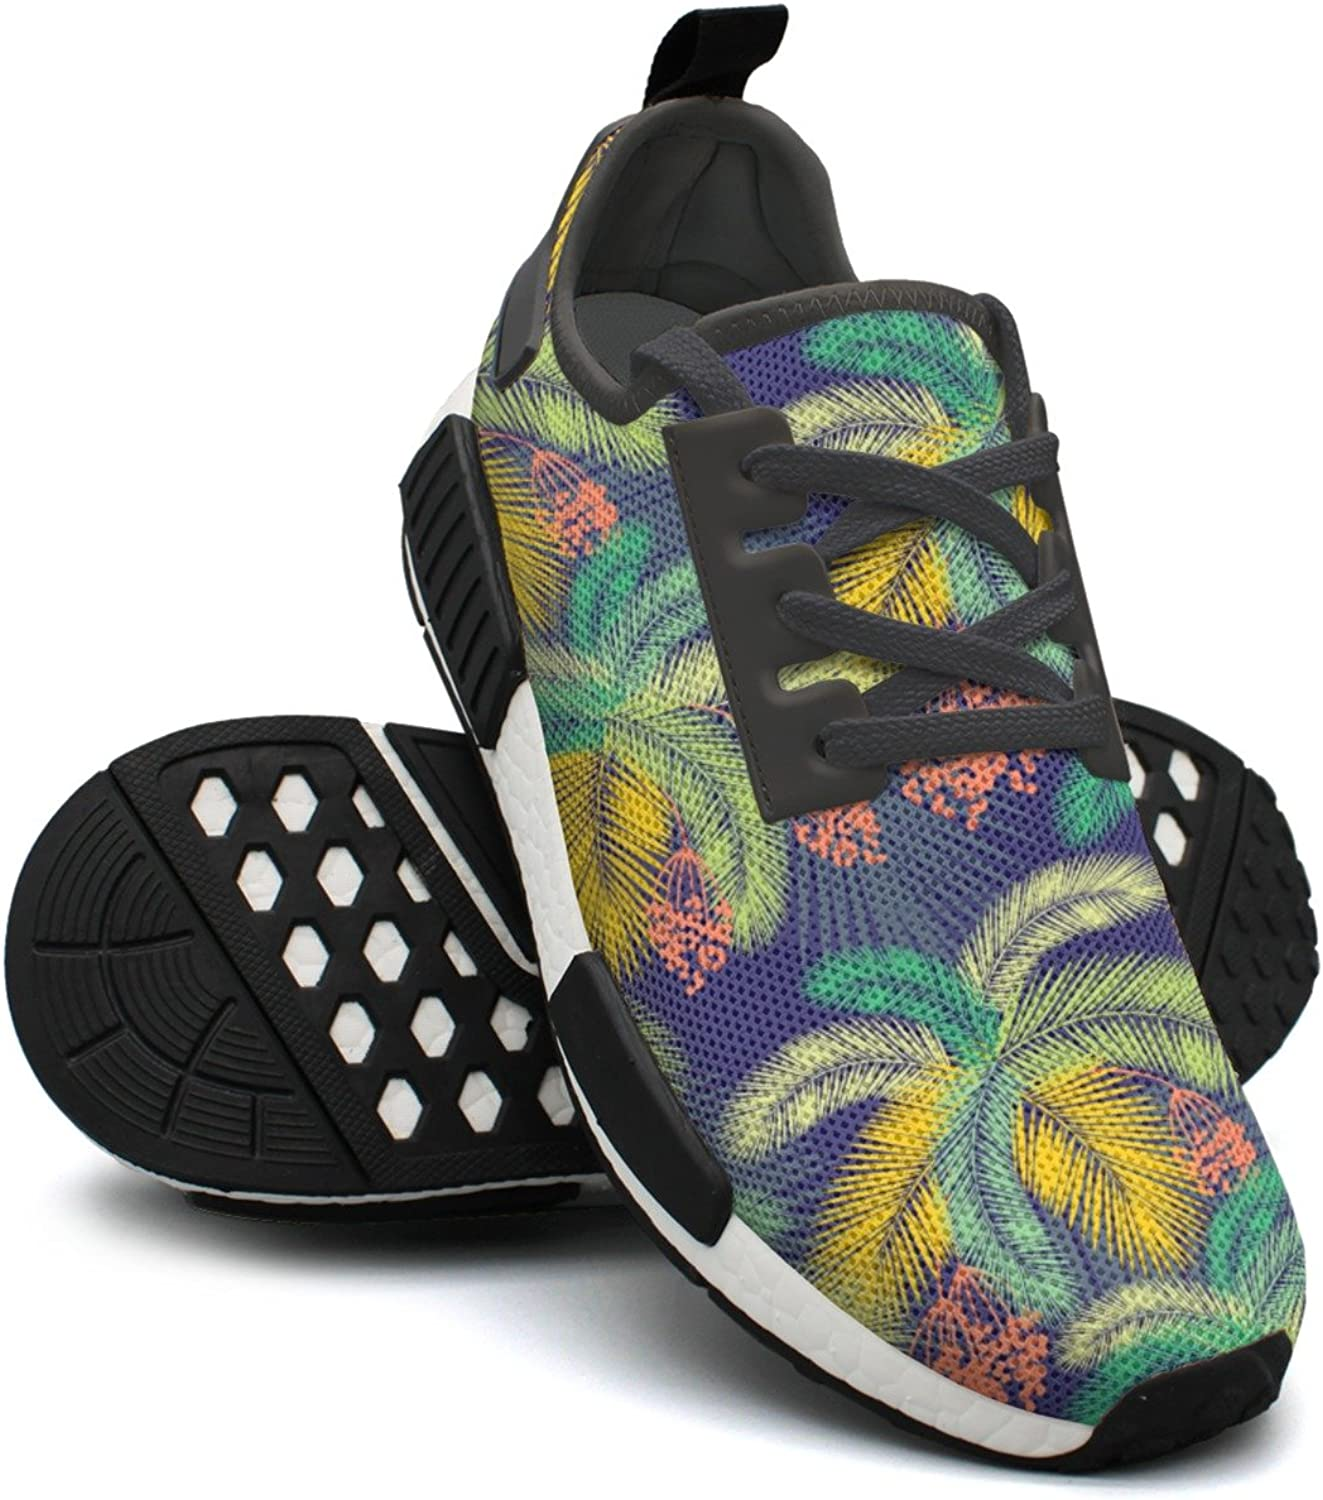 color Palm Leaves And Fruit colorful Running shoes Womens Nmd Tennis shoes Gym